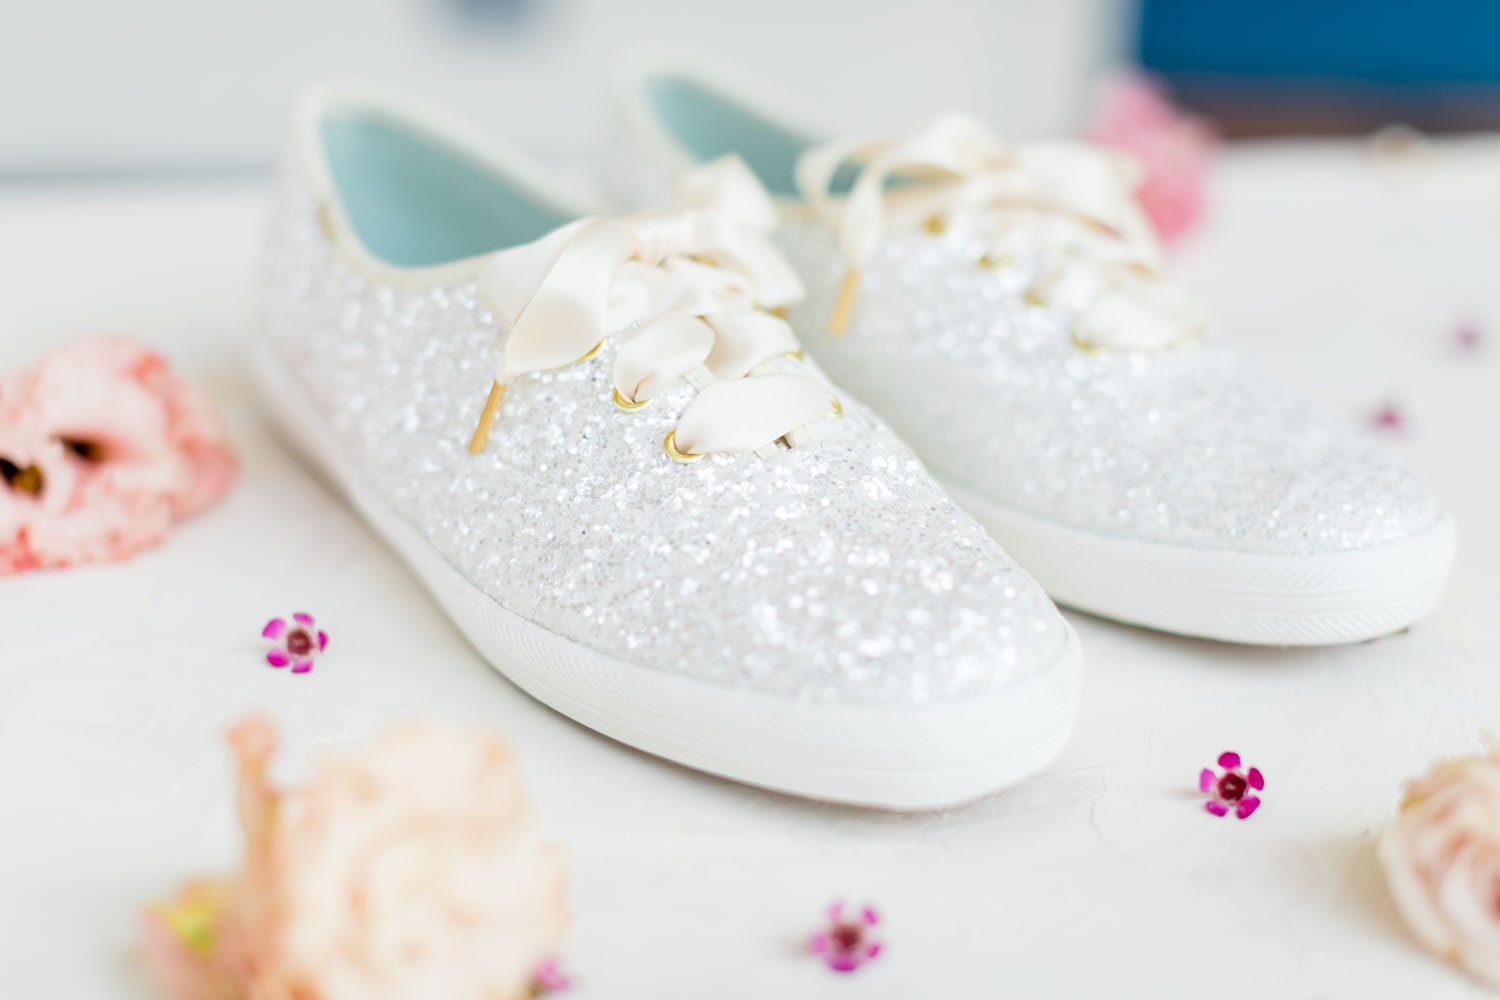 White bridal glitter Keds by Kate Spade styled with flowers, La Quinta Resort Wedding in Palm Springs, Cavin Elizabeth Photography